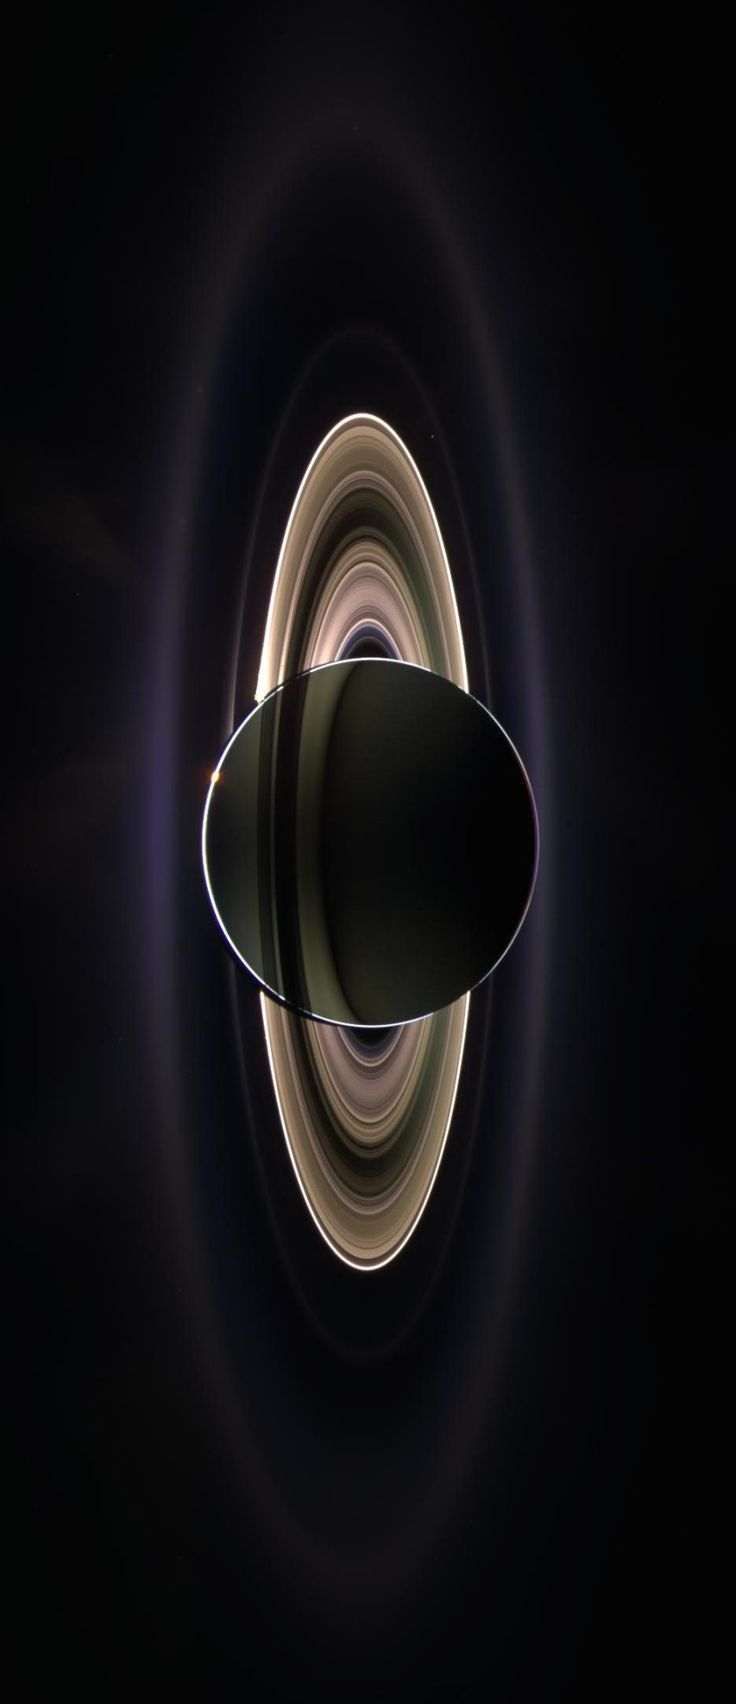 Saturn's Rings - the Cassini Space Probe Thanks to NASA's Cassini Space Probe astronomers are now able to produce the most detailed maps of Saturn's rings in history. This image of Saturn,...